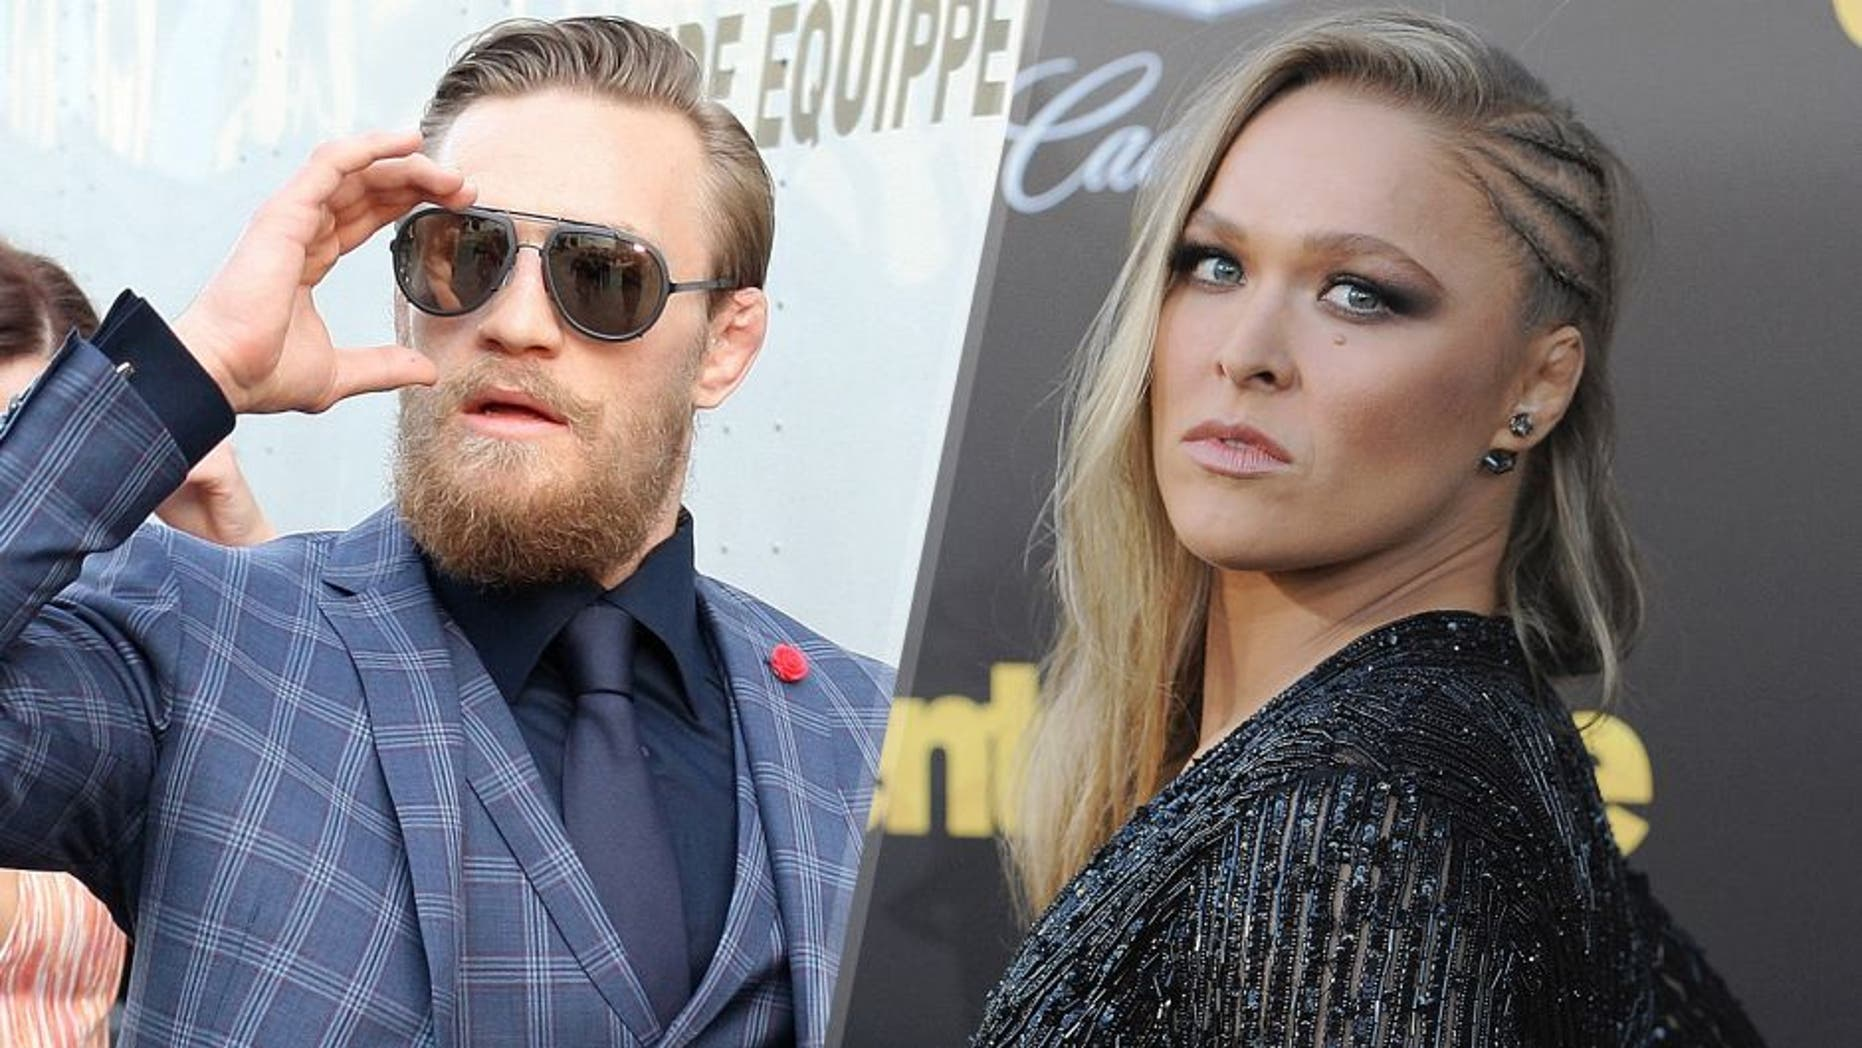 Conor McGregor arrives backstage during the UFC 189 event inside MGM Grand Garden Arena on July 11, 2015 in Las Vegas, Nevada. (Photo by Mitch Viquez/Zuffa LLC/Zuffa LLC via Getty Images) Ronda Rousey arrives at the Los Angeles Premiere 'Entourage' at Regency Village Theatre on June 1, 2015 in Westwood, California. (Photo by Jon Kopaloff/FilmMagic)